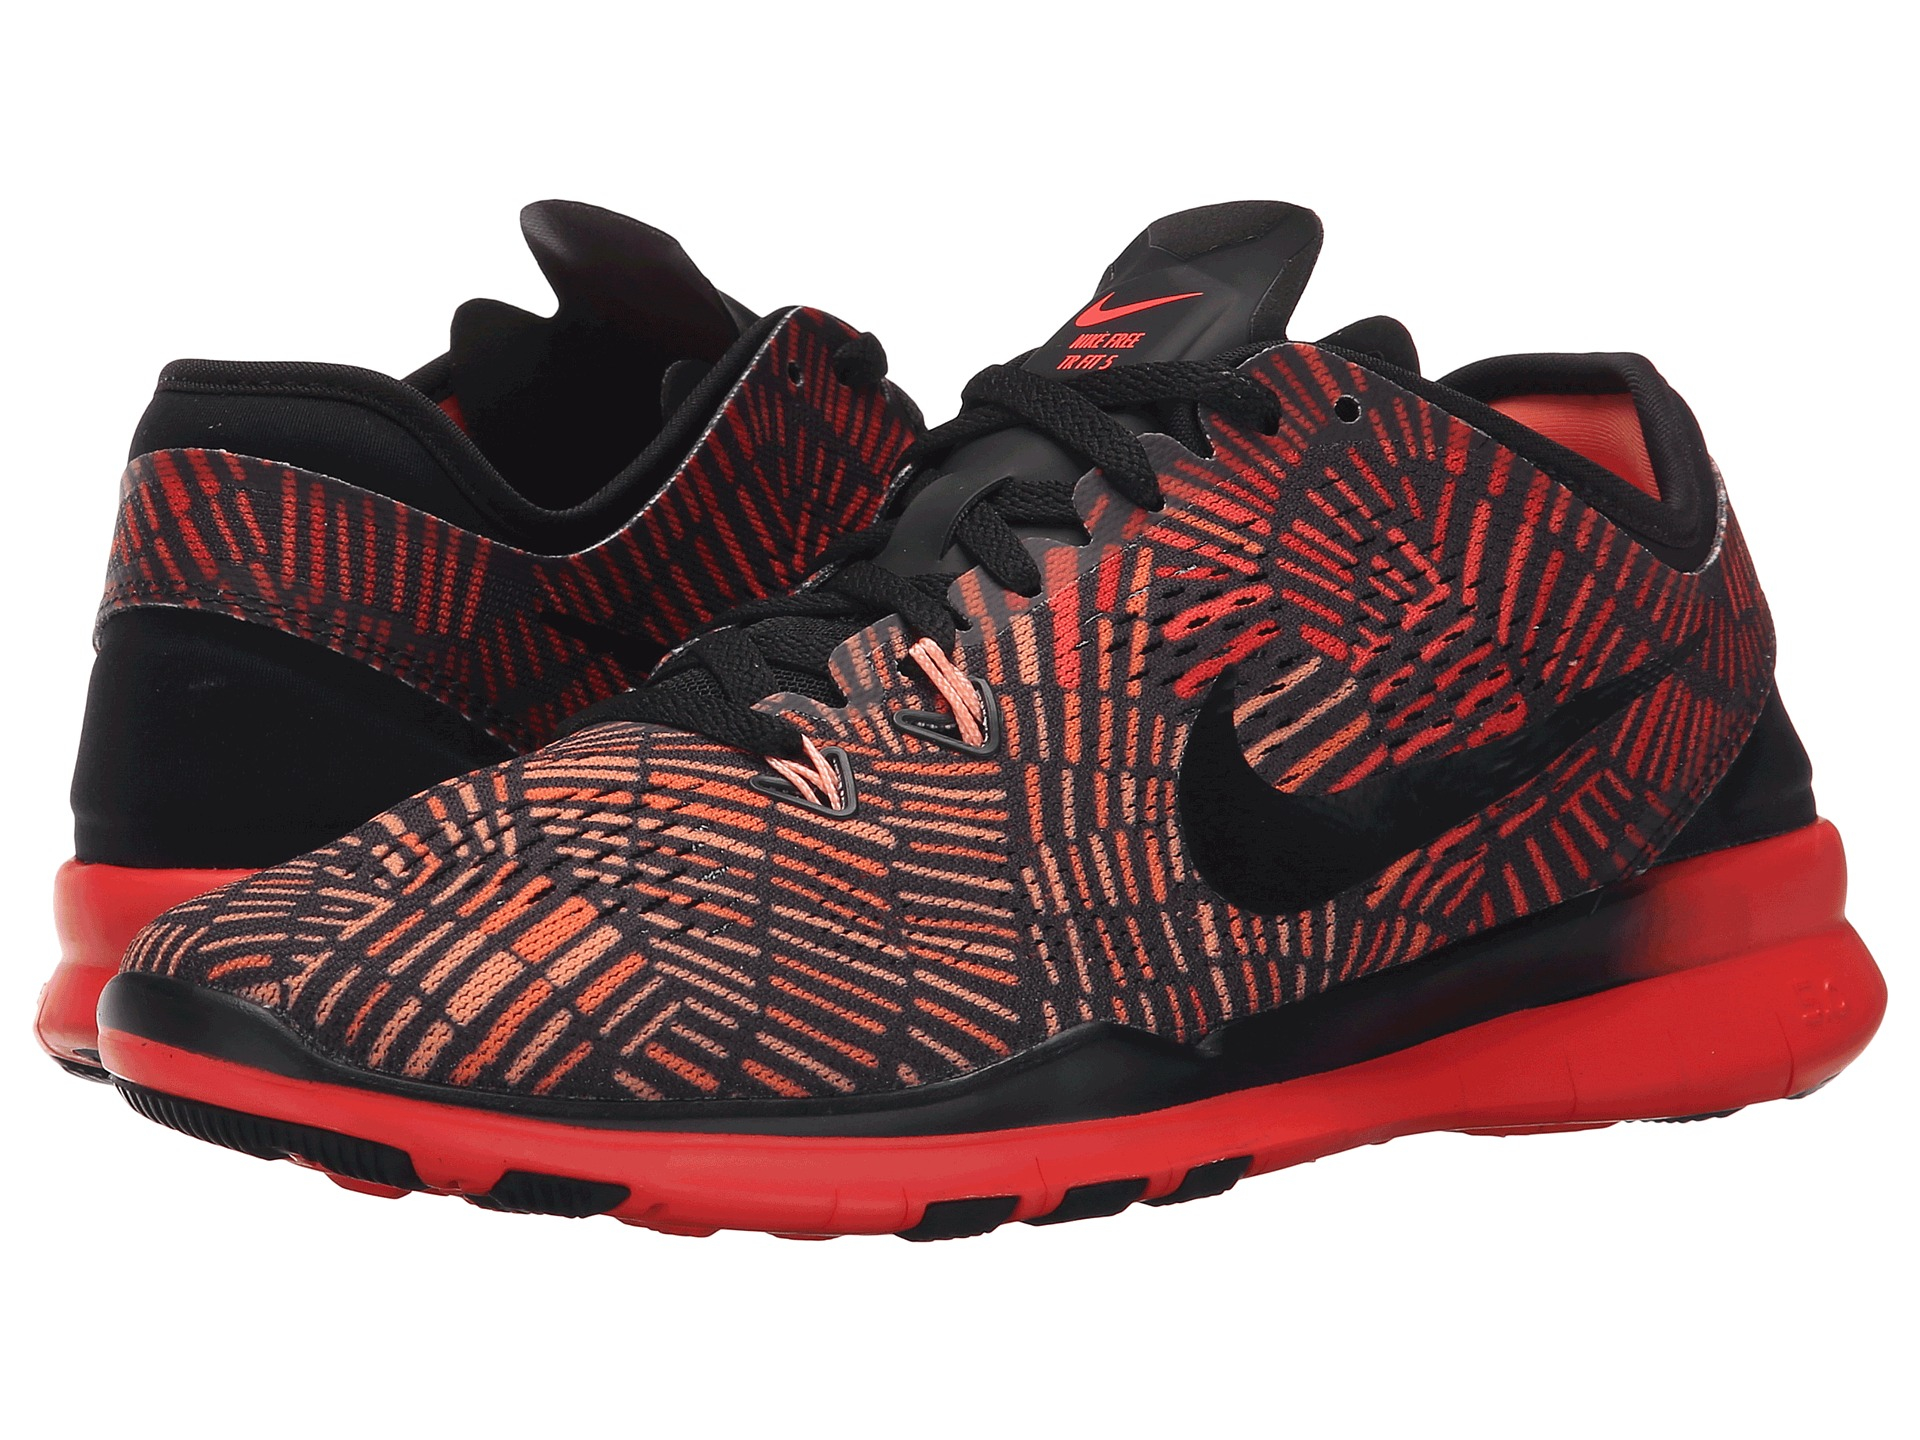 new product 050dd e36a2 ... wholesale lyst nike free 5.0 tr fit 5 prt in red 477df fac73